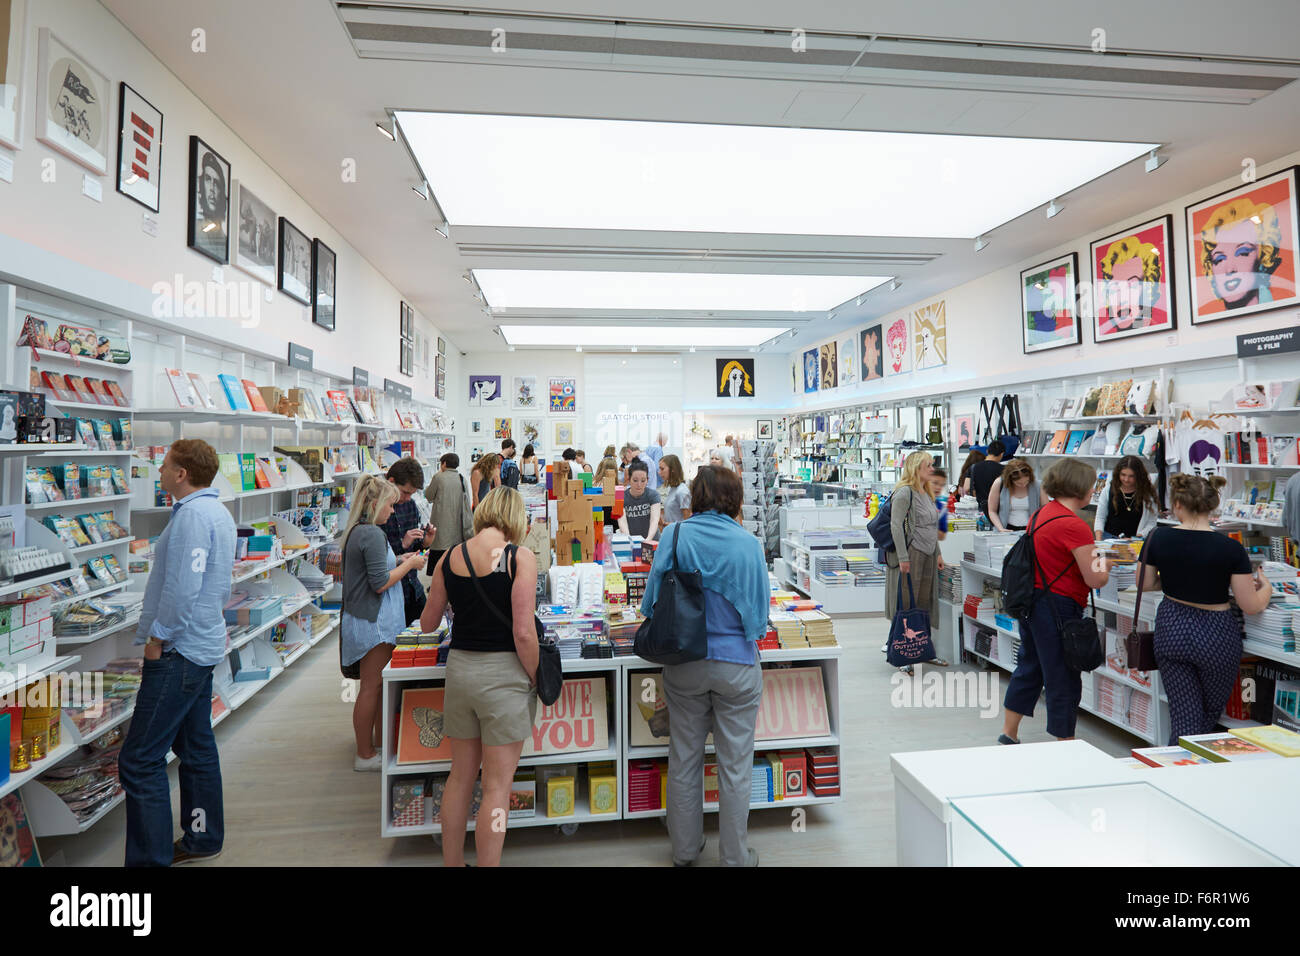 Visitors at the Saatchi Gallery book shop in London - Stock Image